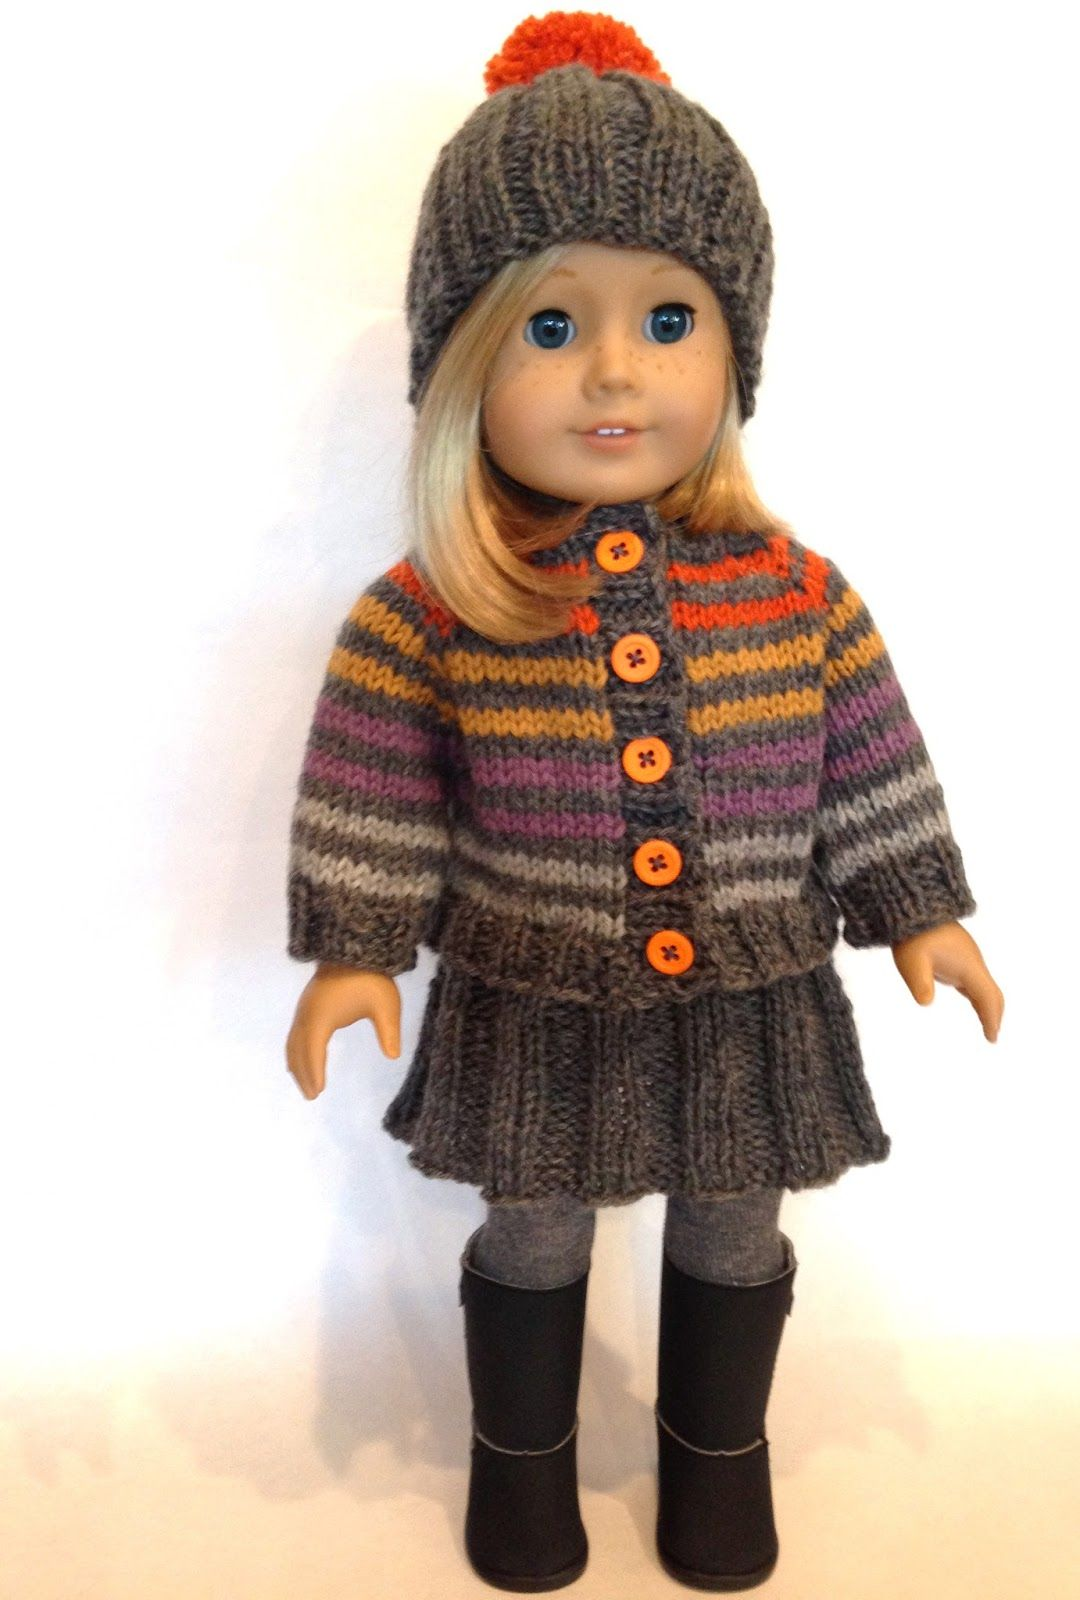 Huckleberry friend free pattern knitionary huckleberry free huckleberry friend free knitting pattern for dolls runs large bankloansurffo Gallery